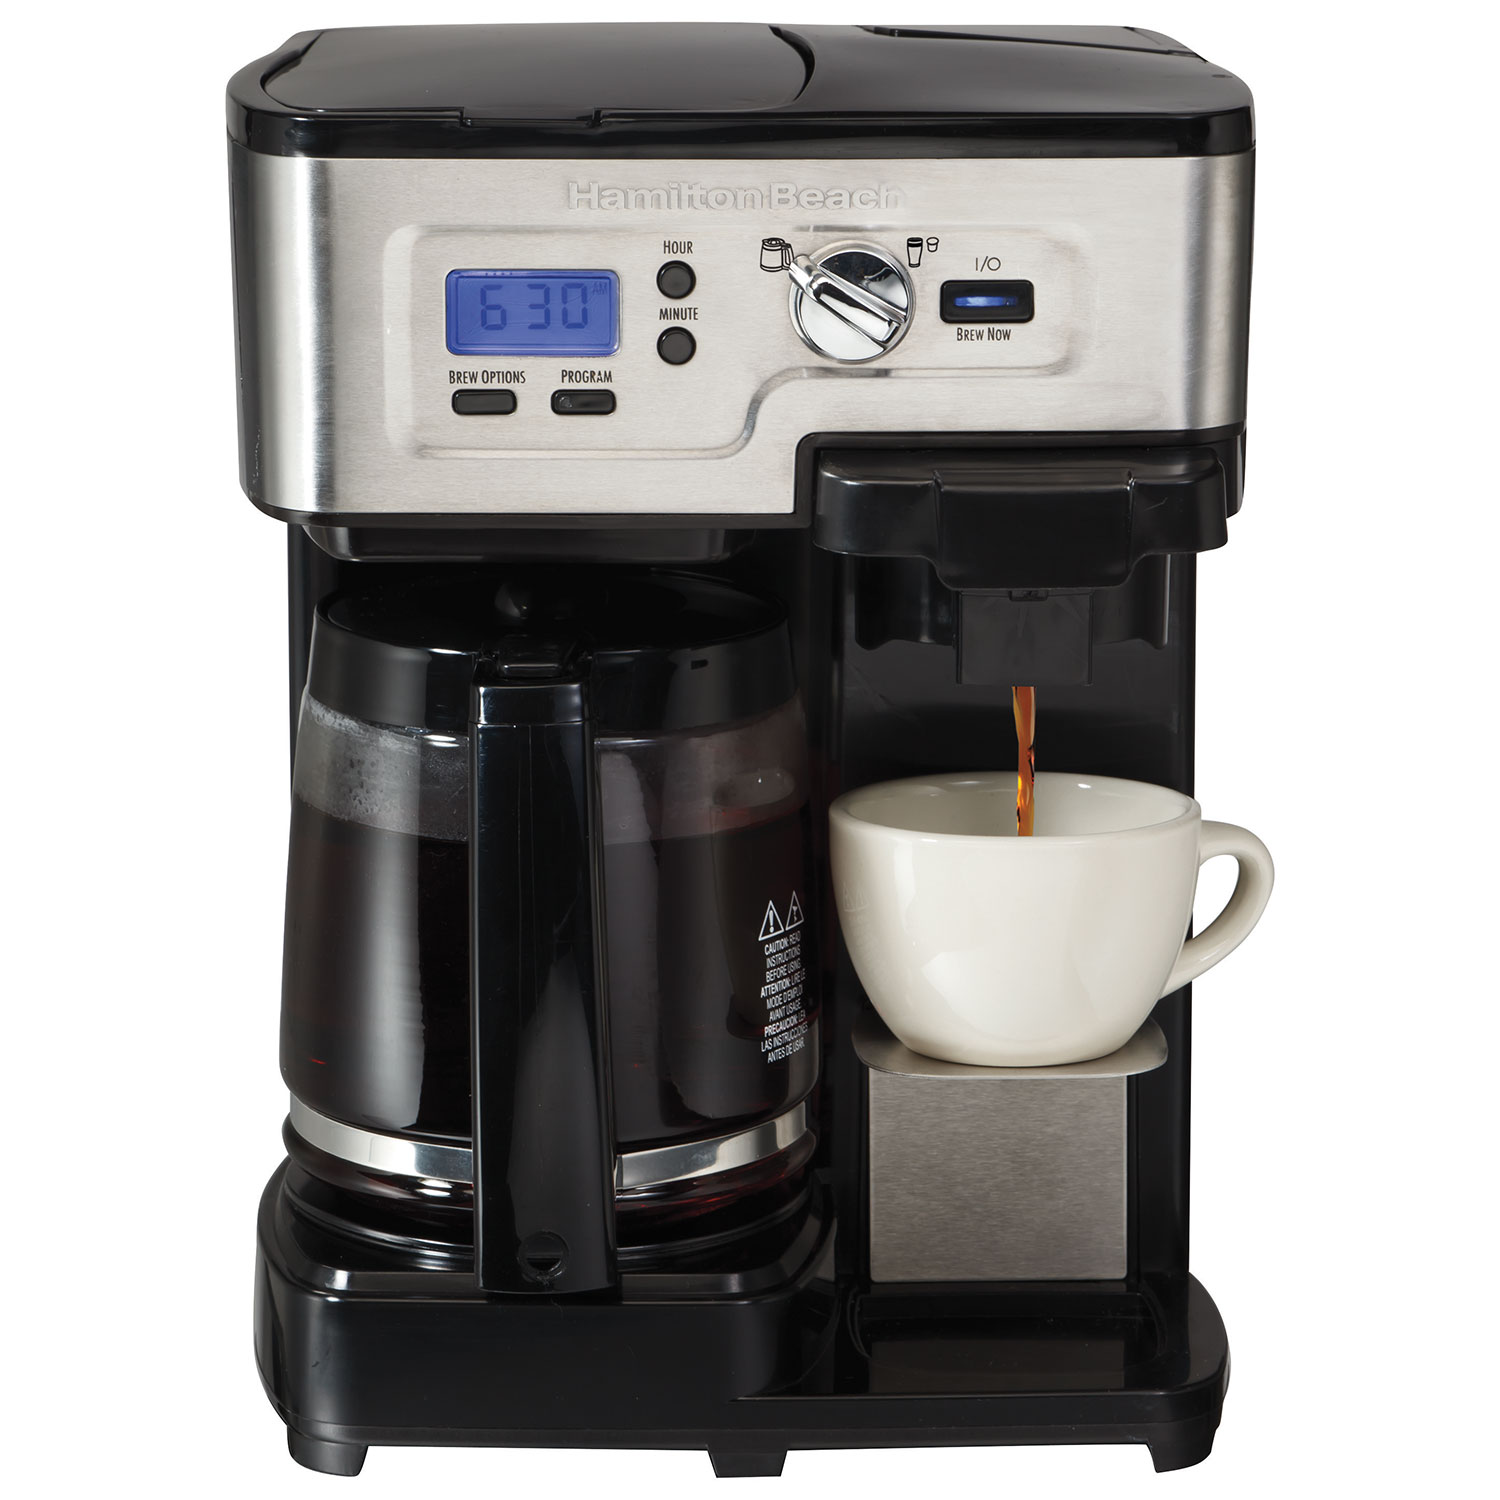 Electronic Test Cases For Coffee Machine hamilton beach 12 cup multi functional coffee maker 49983c blackstainless makers best buy canada